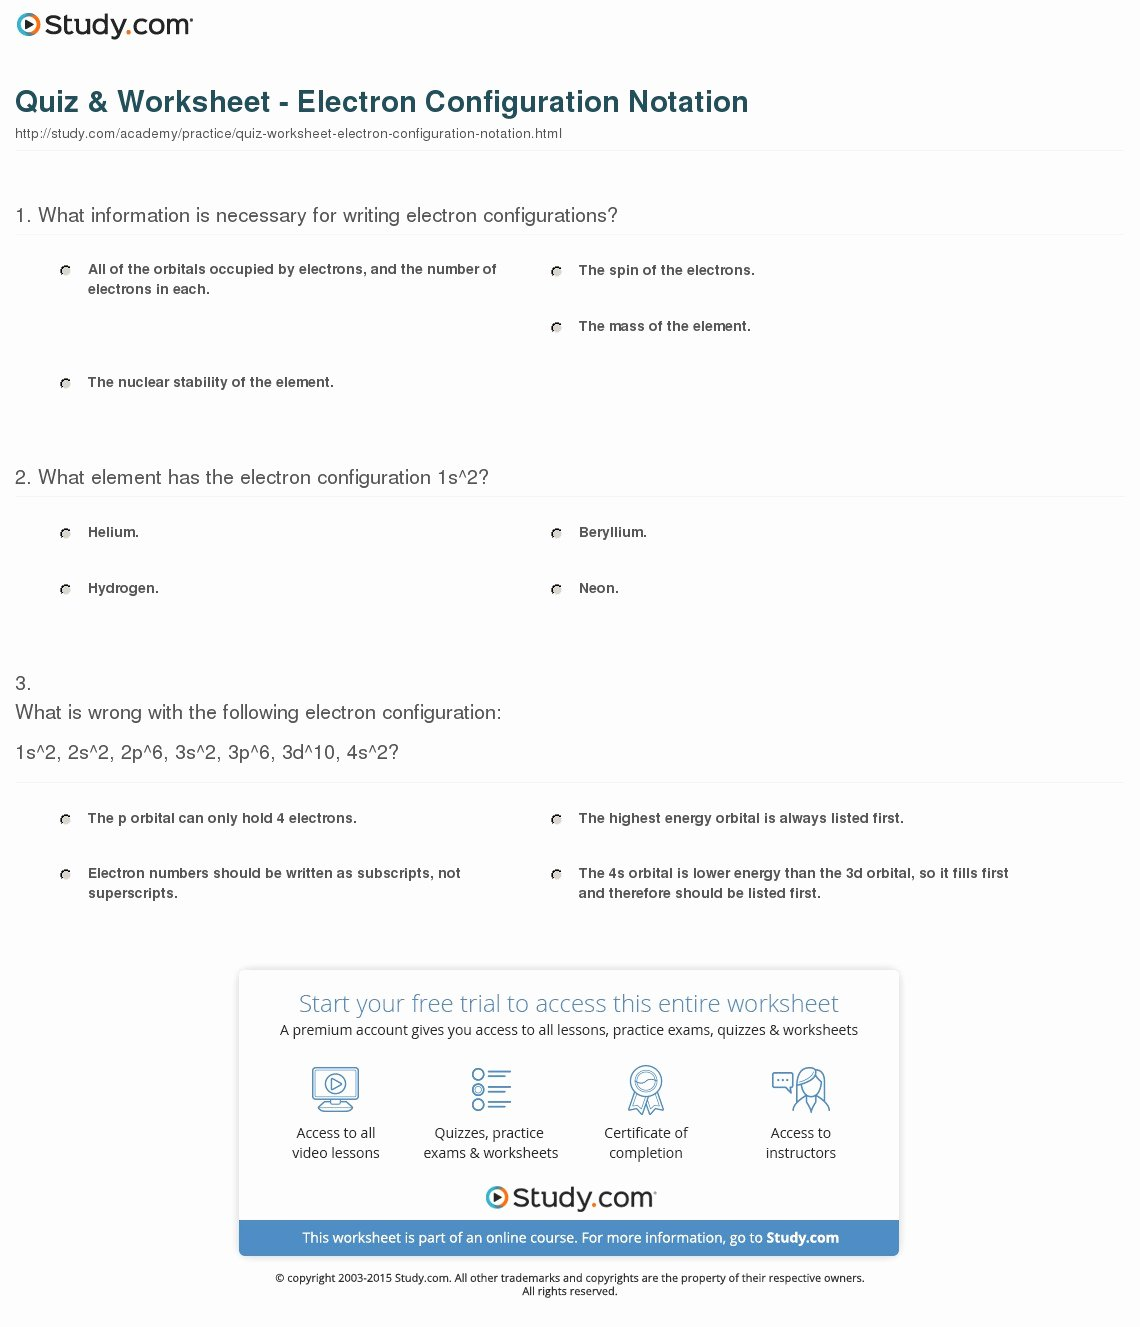 Electron Configuration Worksheet Answers Awesome Quiz & Worksheet Electron Configuration Notation